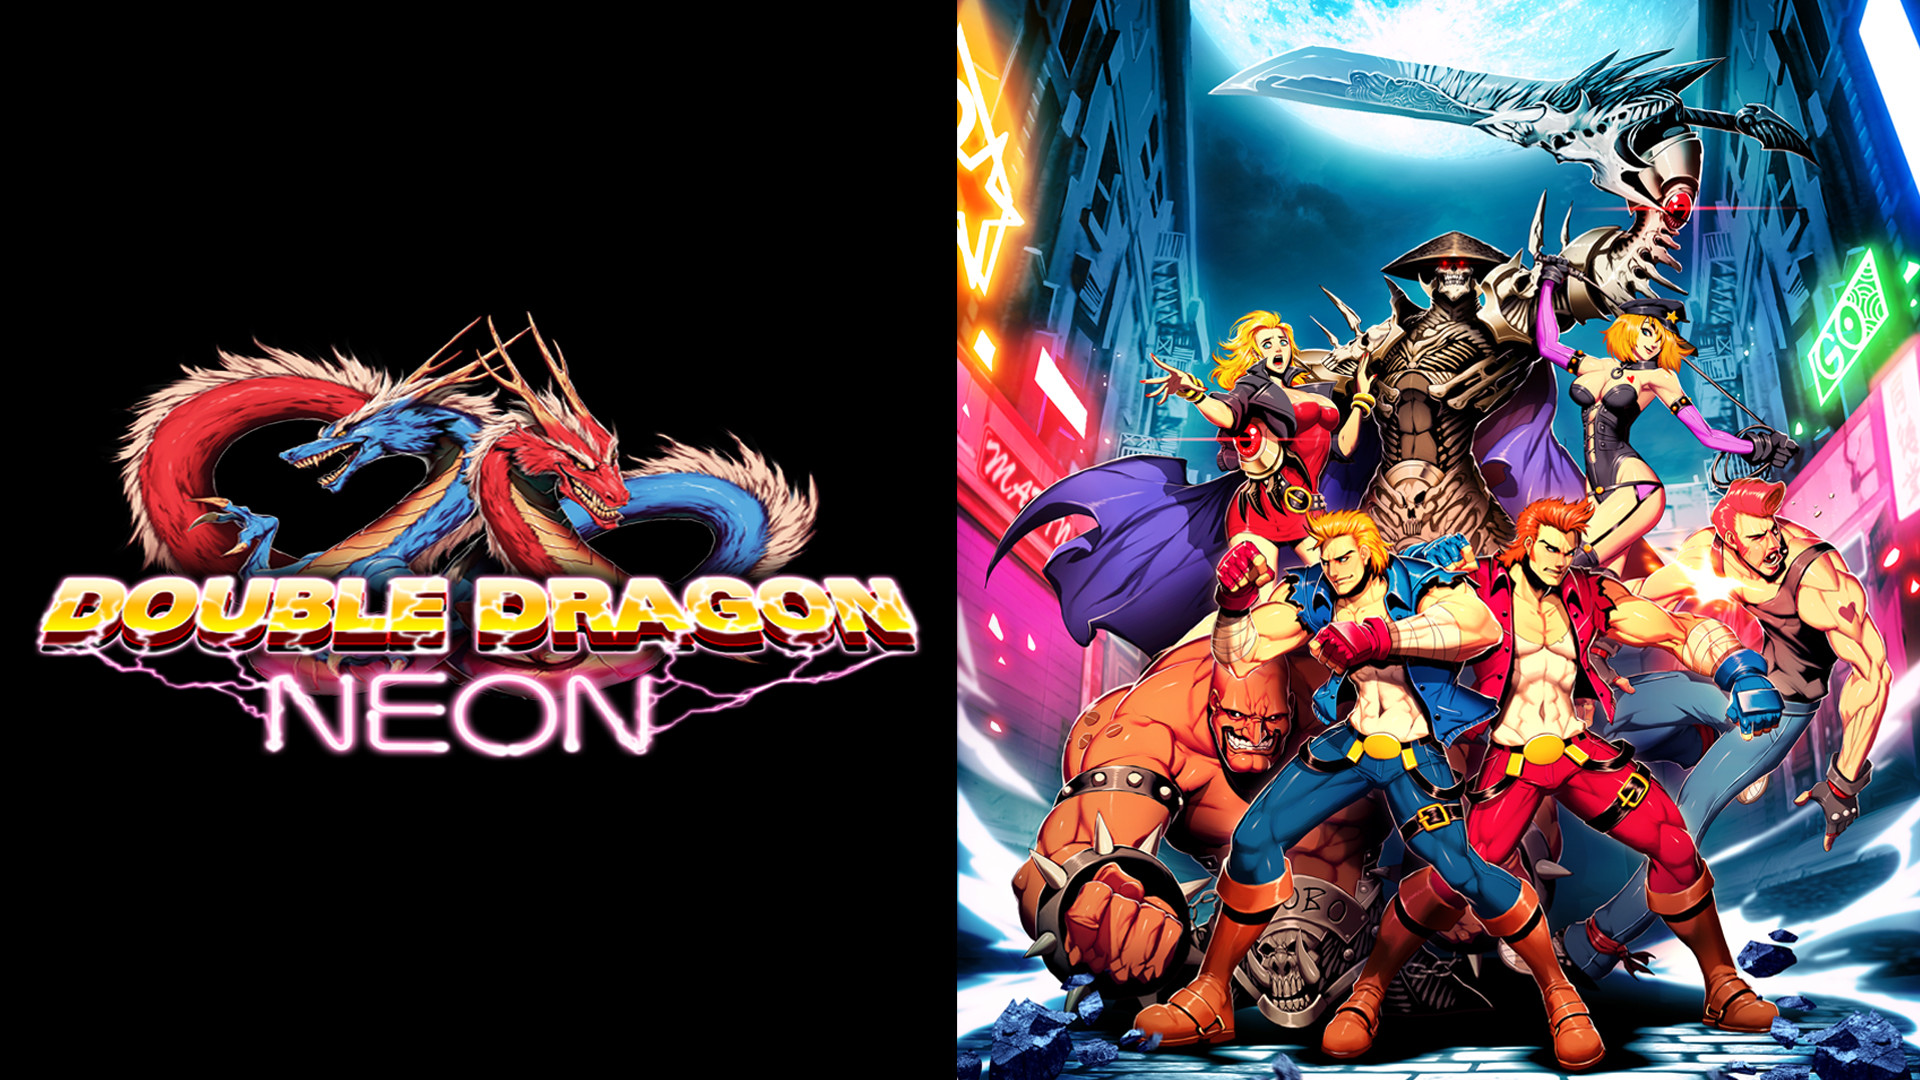 Res: 1920x1080, wallpaper #10 Wallpaper from Double Dragon: Neon